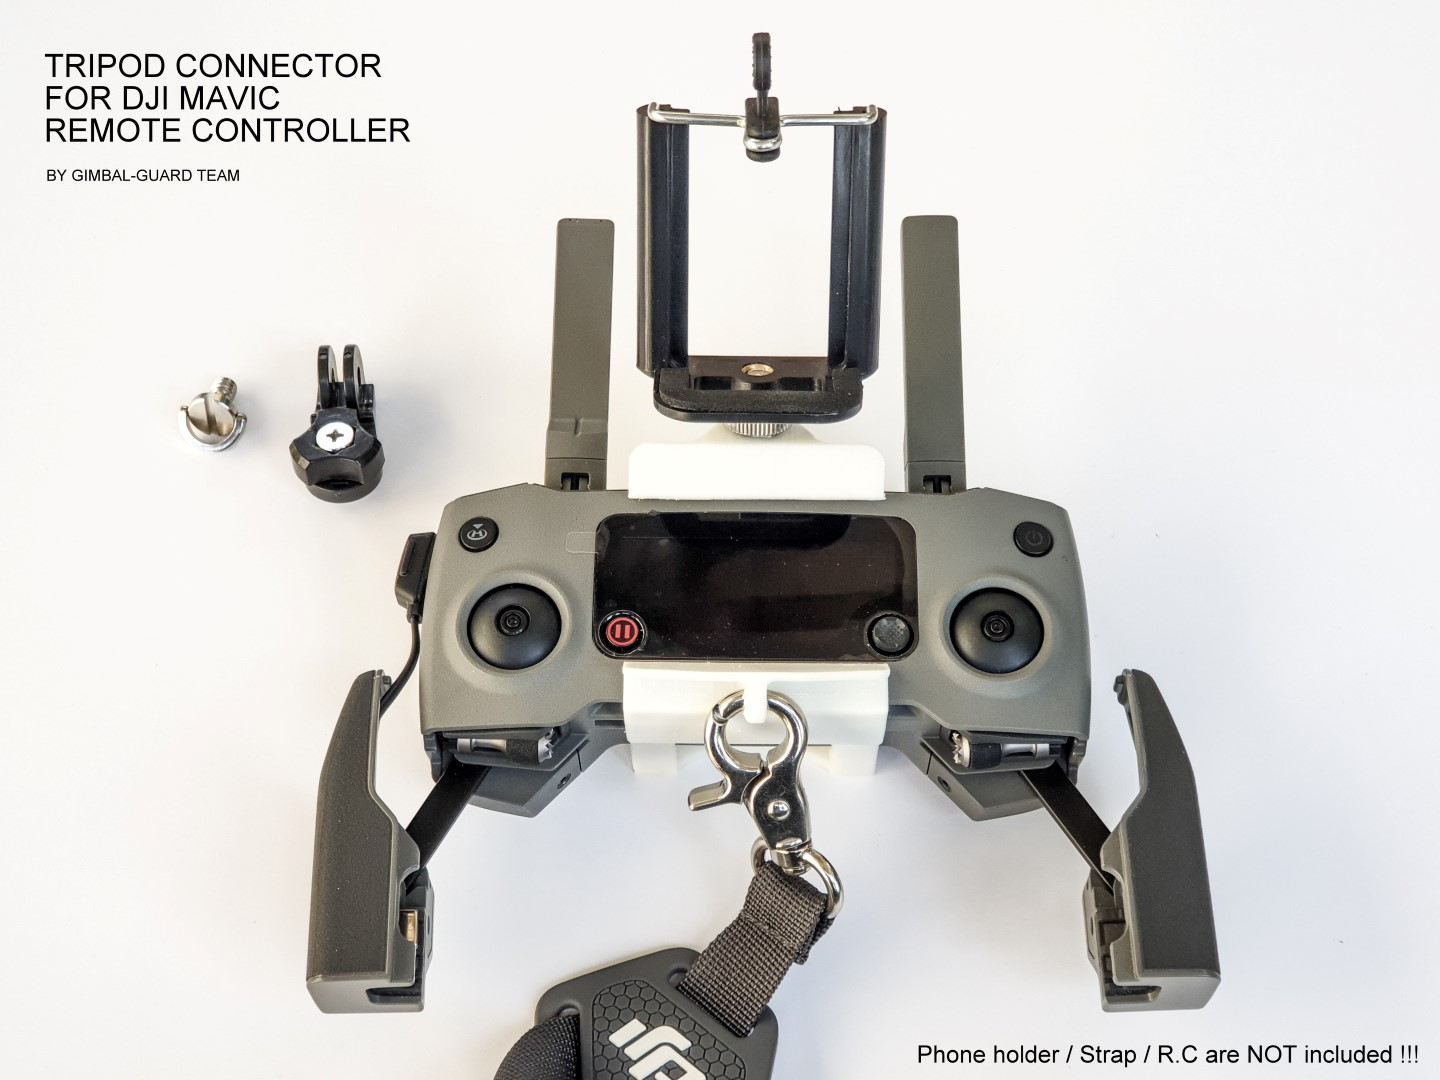 Tripod tablet connector for DJI Mavic pr